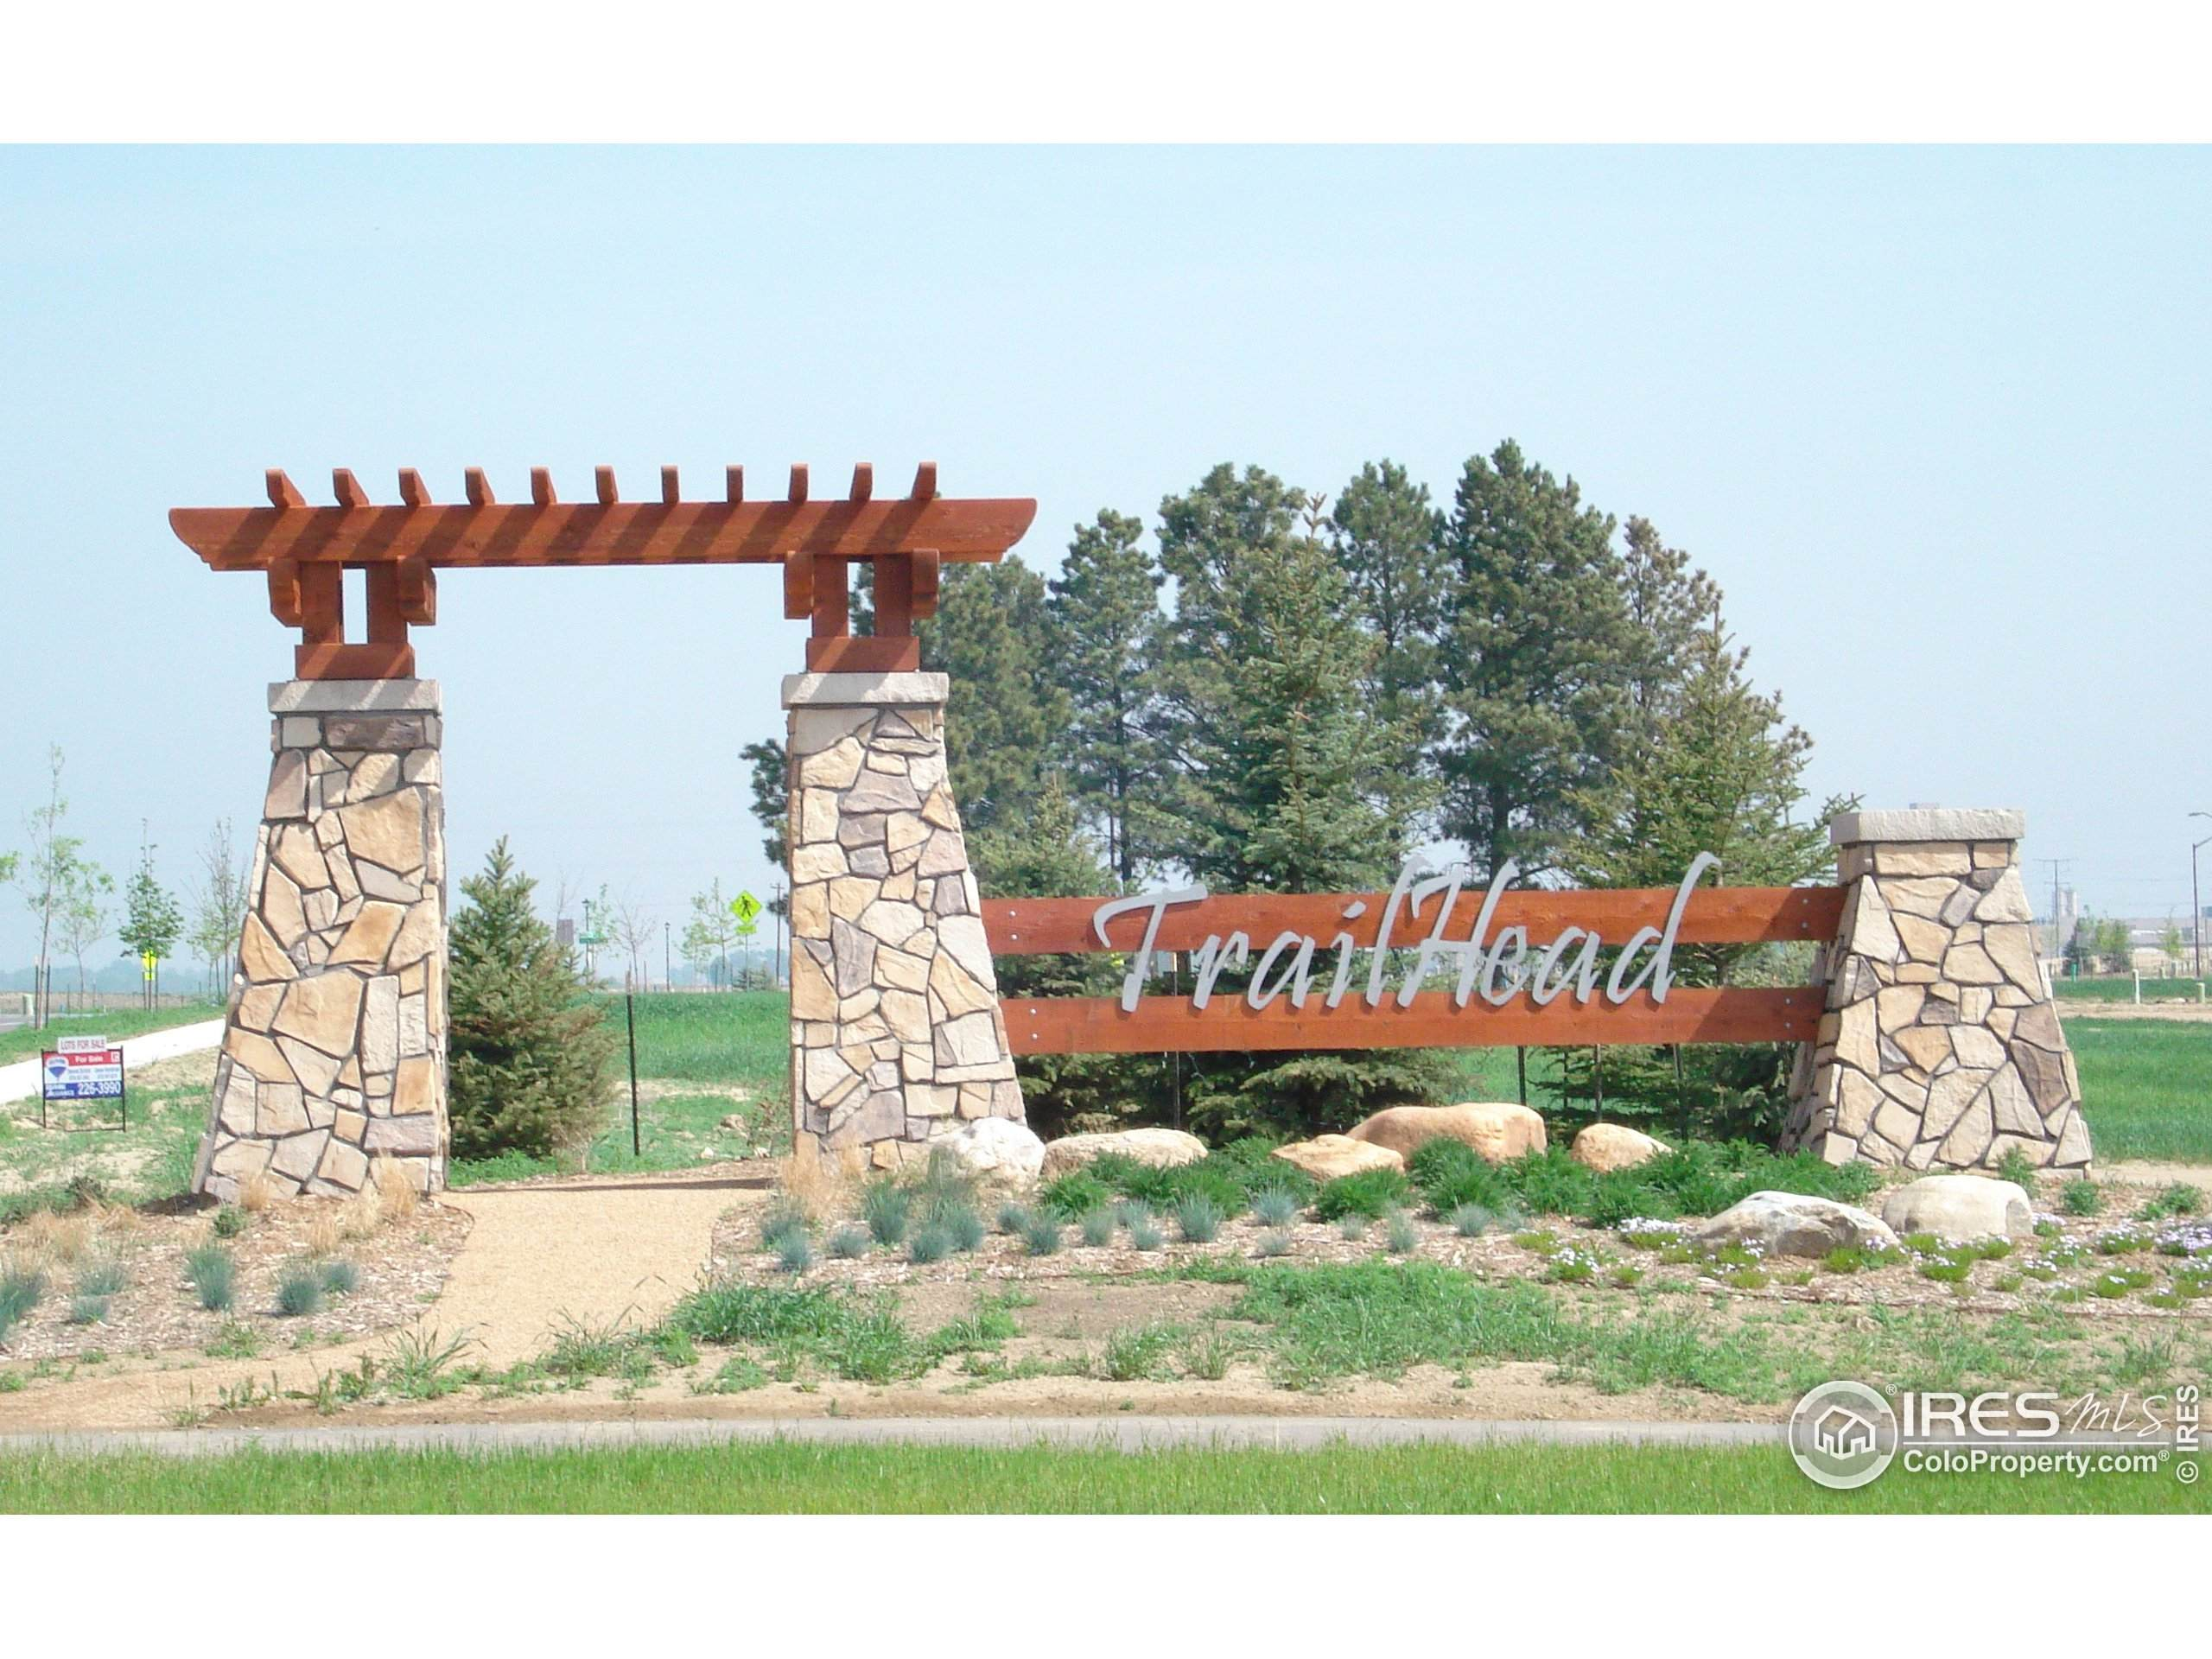 734 27th Ave #2, Greeley, CO 80634 (MLS #925093) :: RE/MAX Alliance